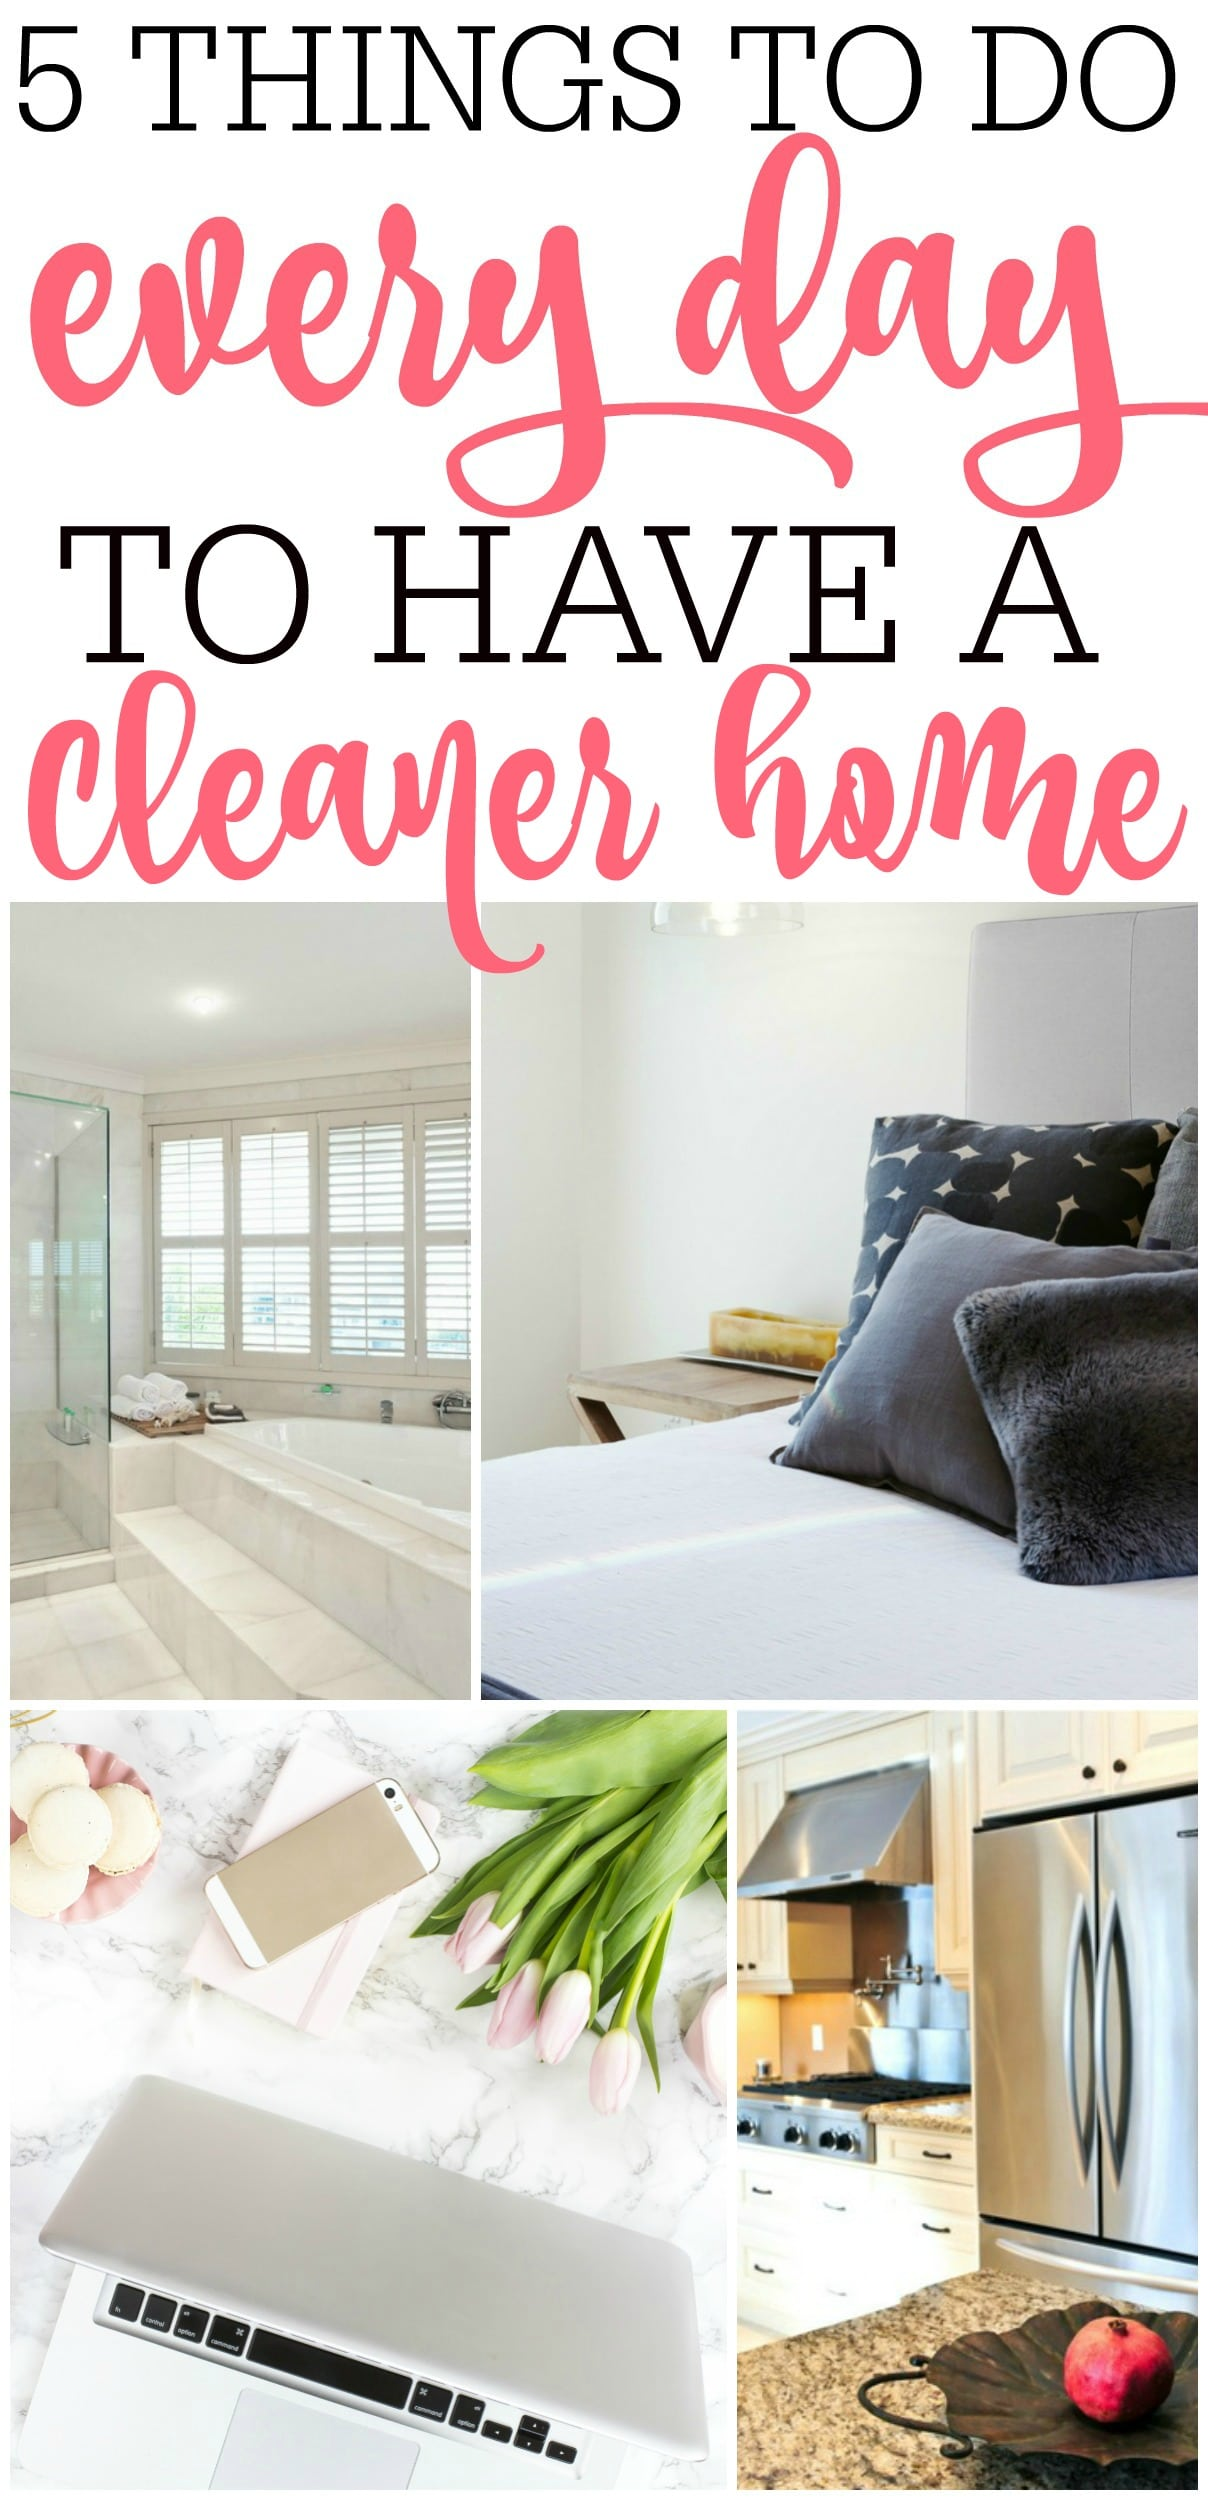 Tired of a dirty home? Try this simple tip to keep the house clean. 5 Easy Things To Do Every Day For A Cleaner Home! It makes cleaning easy.